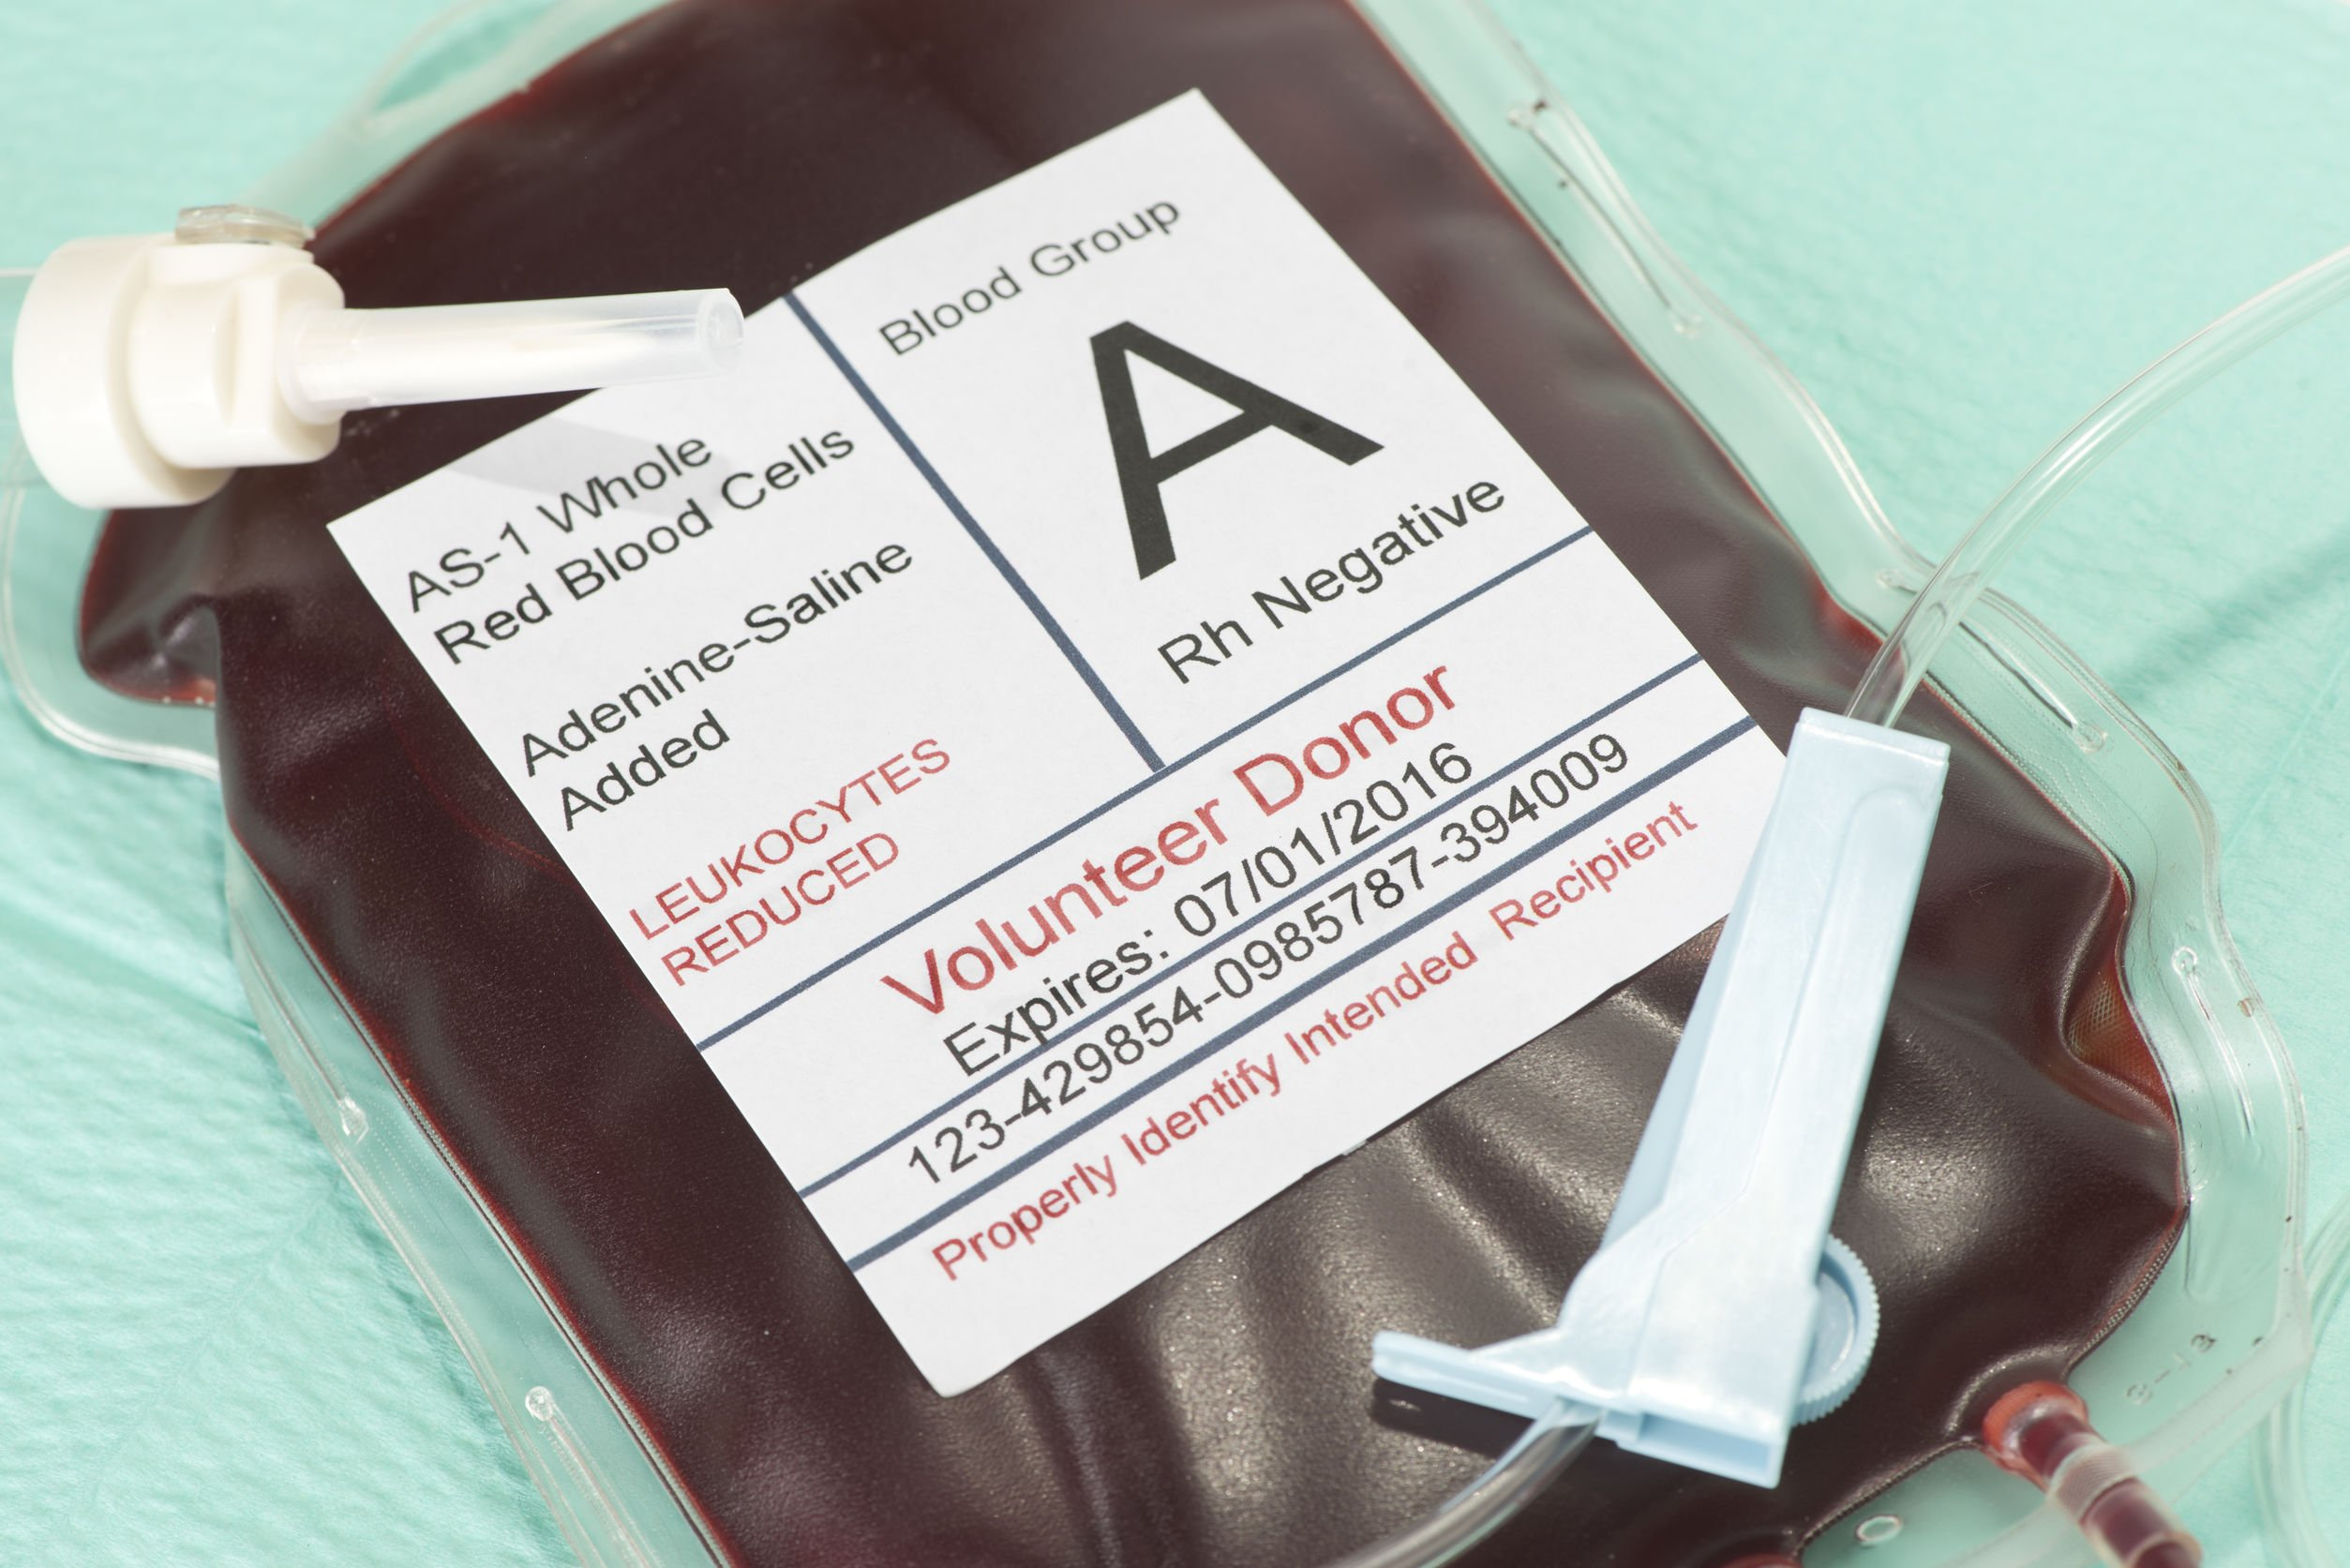 Cvd Amp Abo Blood Types Naturopathic Doctor News And Review